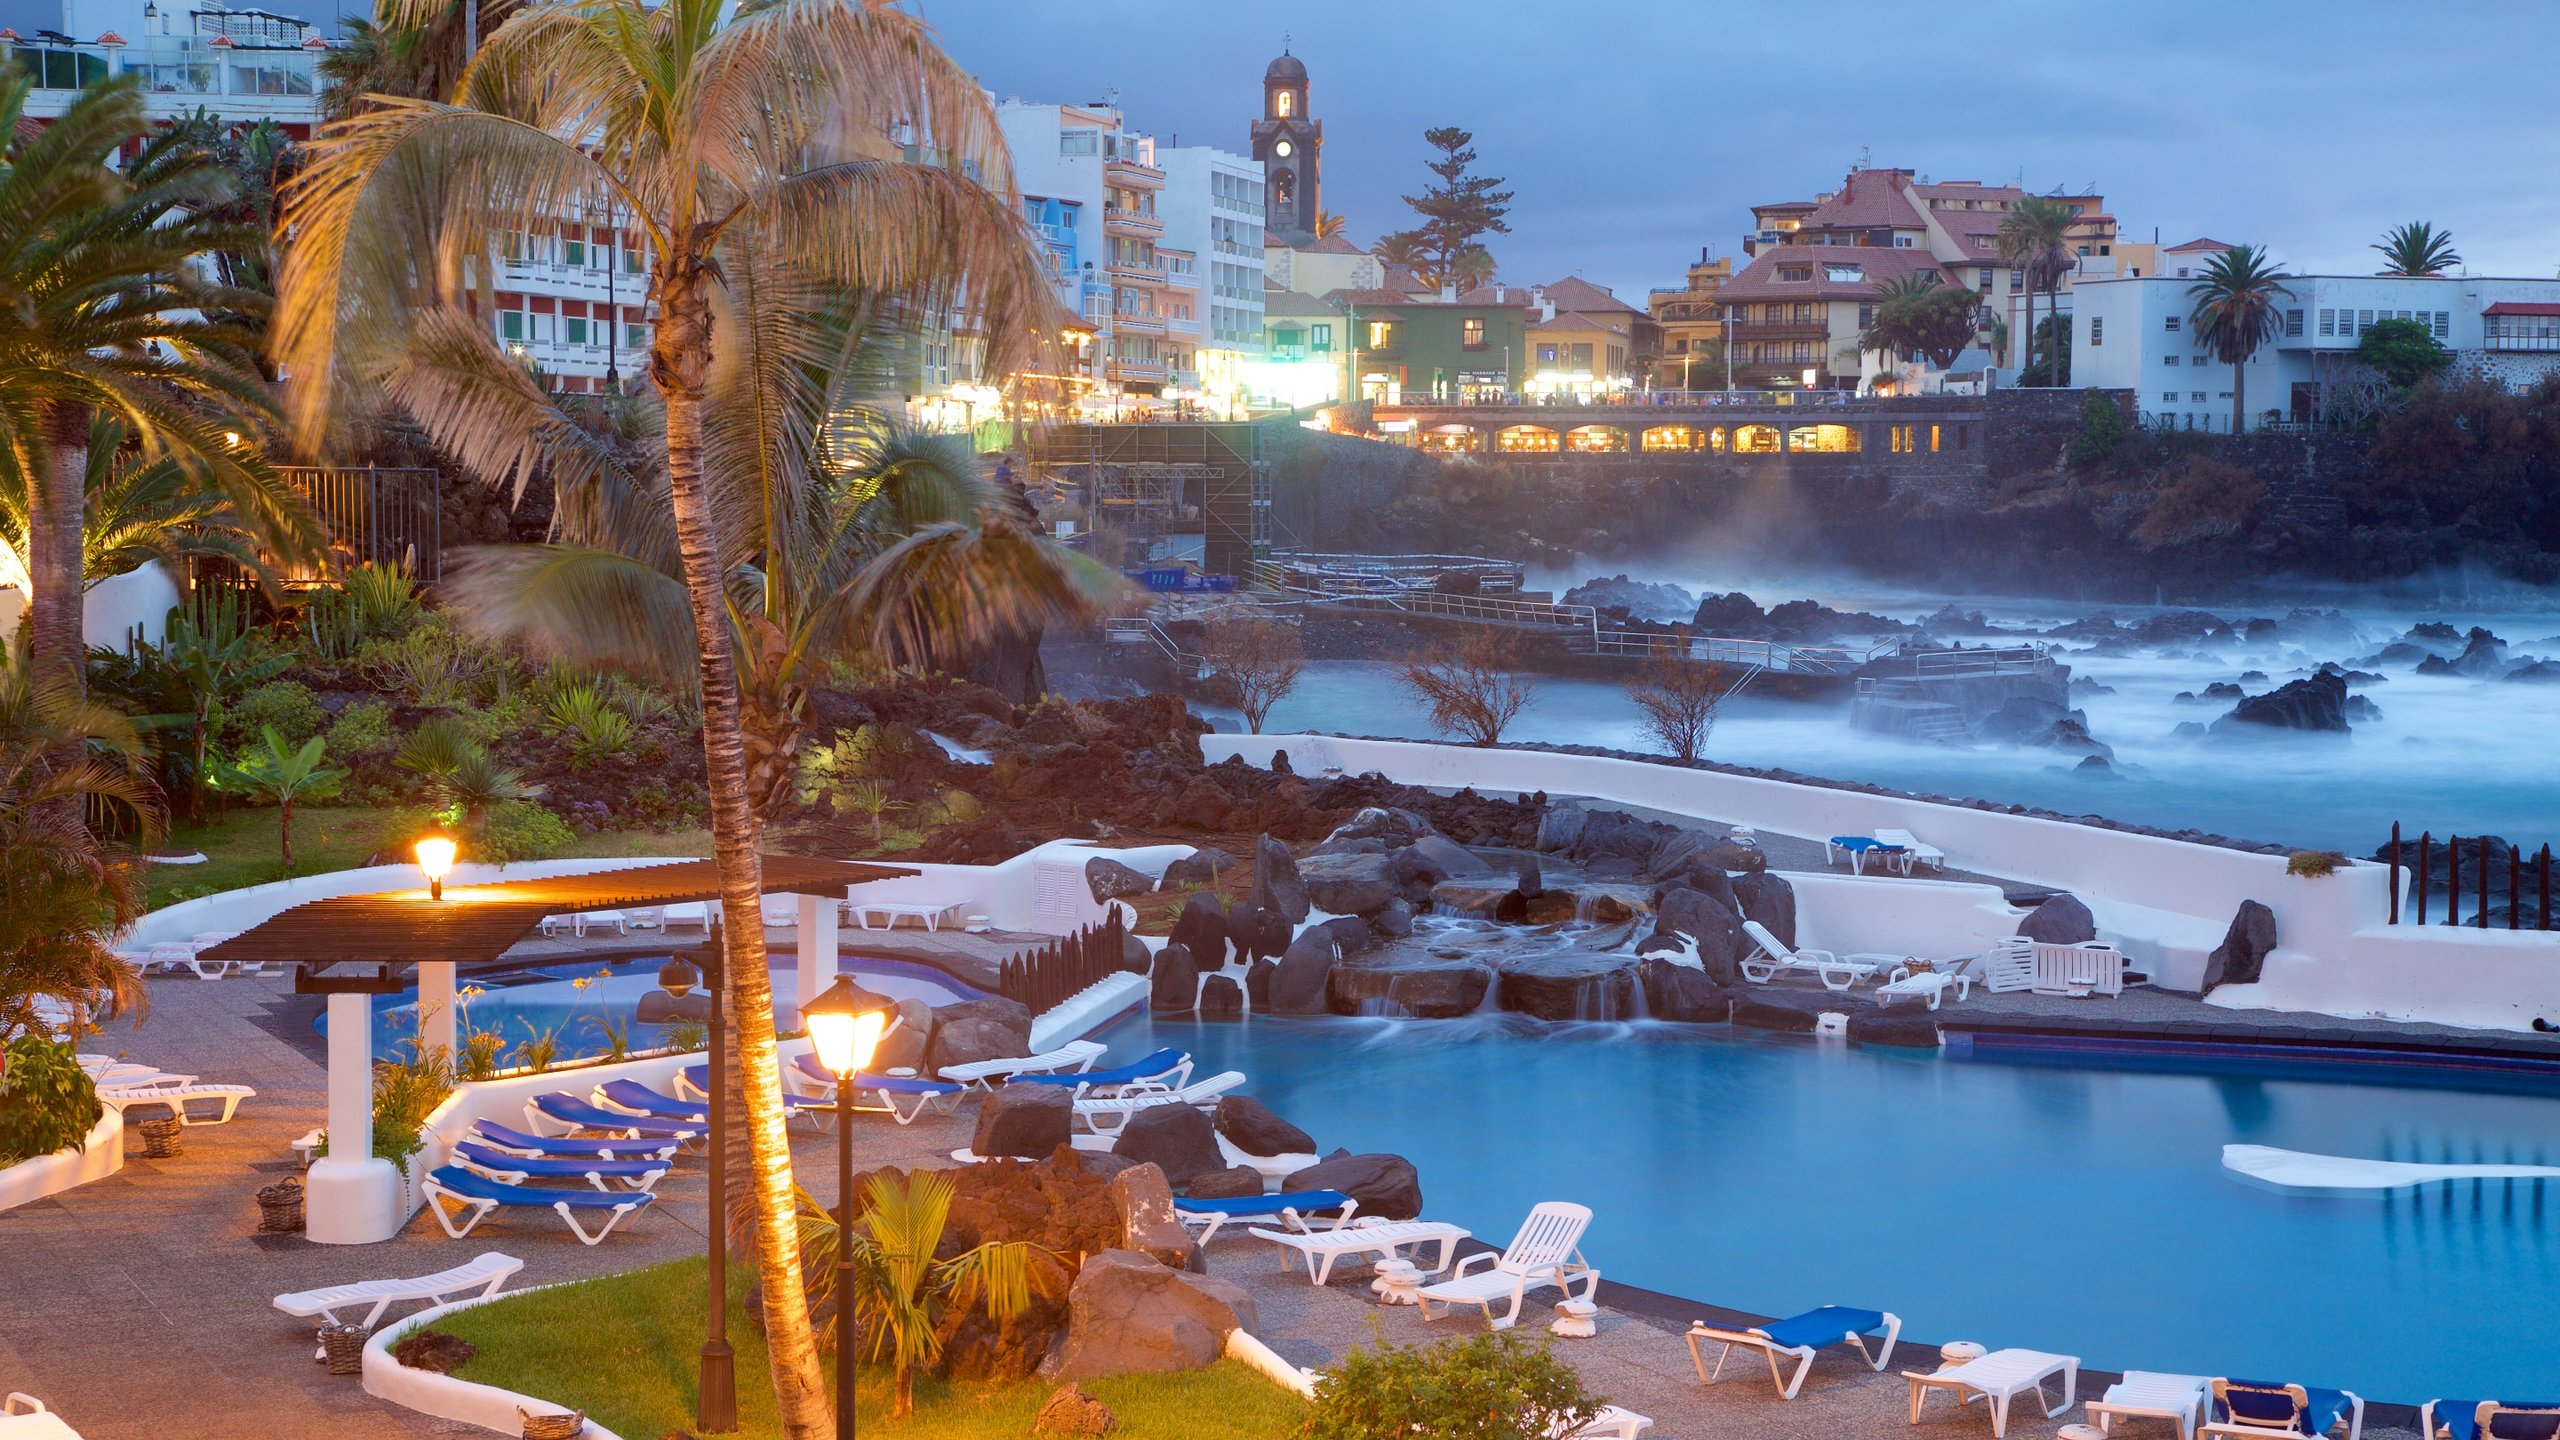 Tenerife Hotels FREE cancellation on select hotels  Expedia